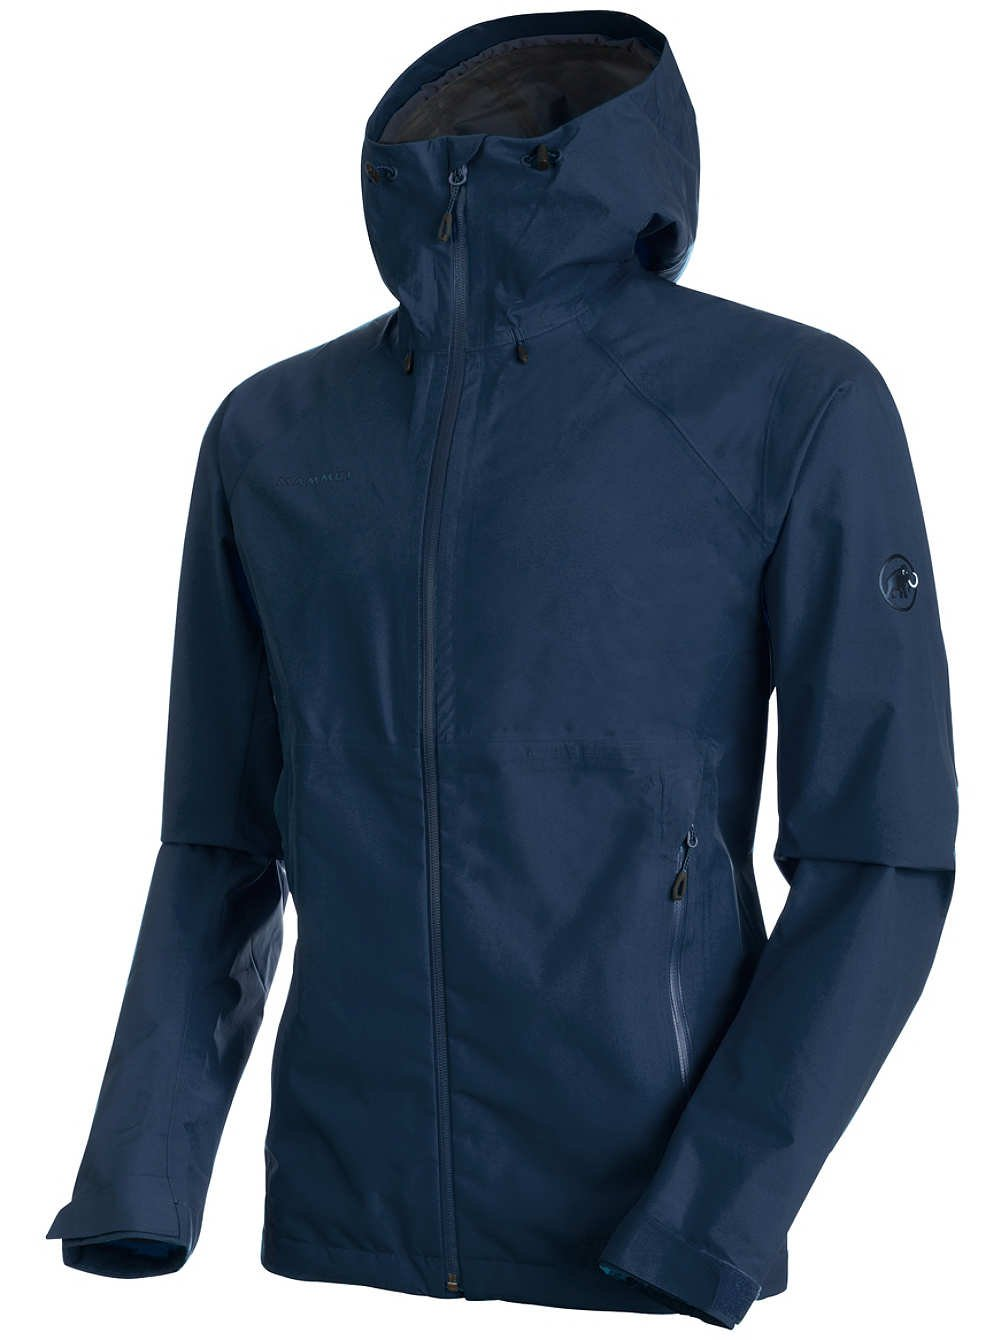 ◎マムート(MAMMUT) Convey Tour HS Hooded Jacket メンズ 1010-26030-0001 ジャケット B078JQ2MBX Small|marine marine Small